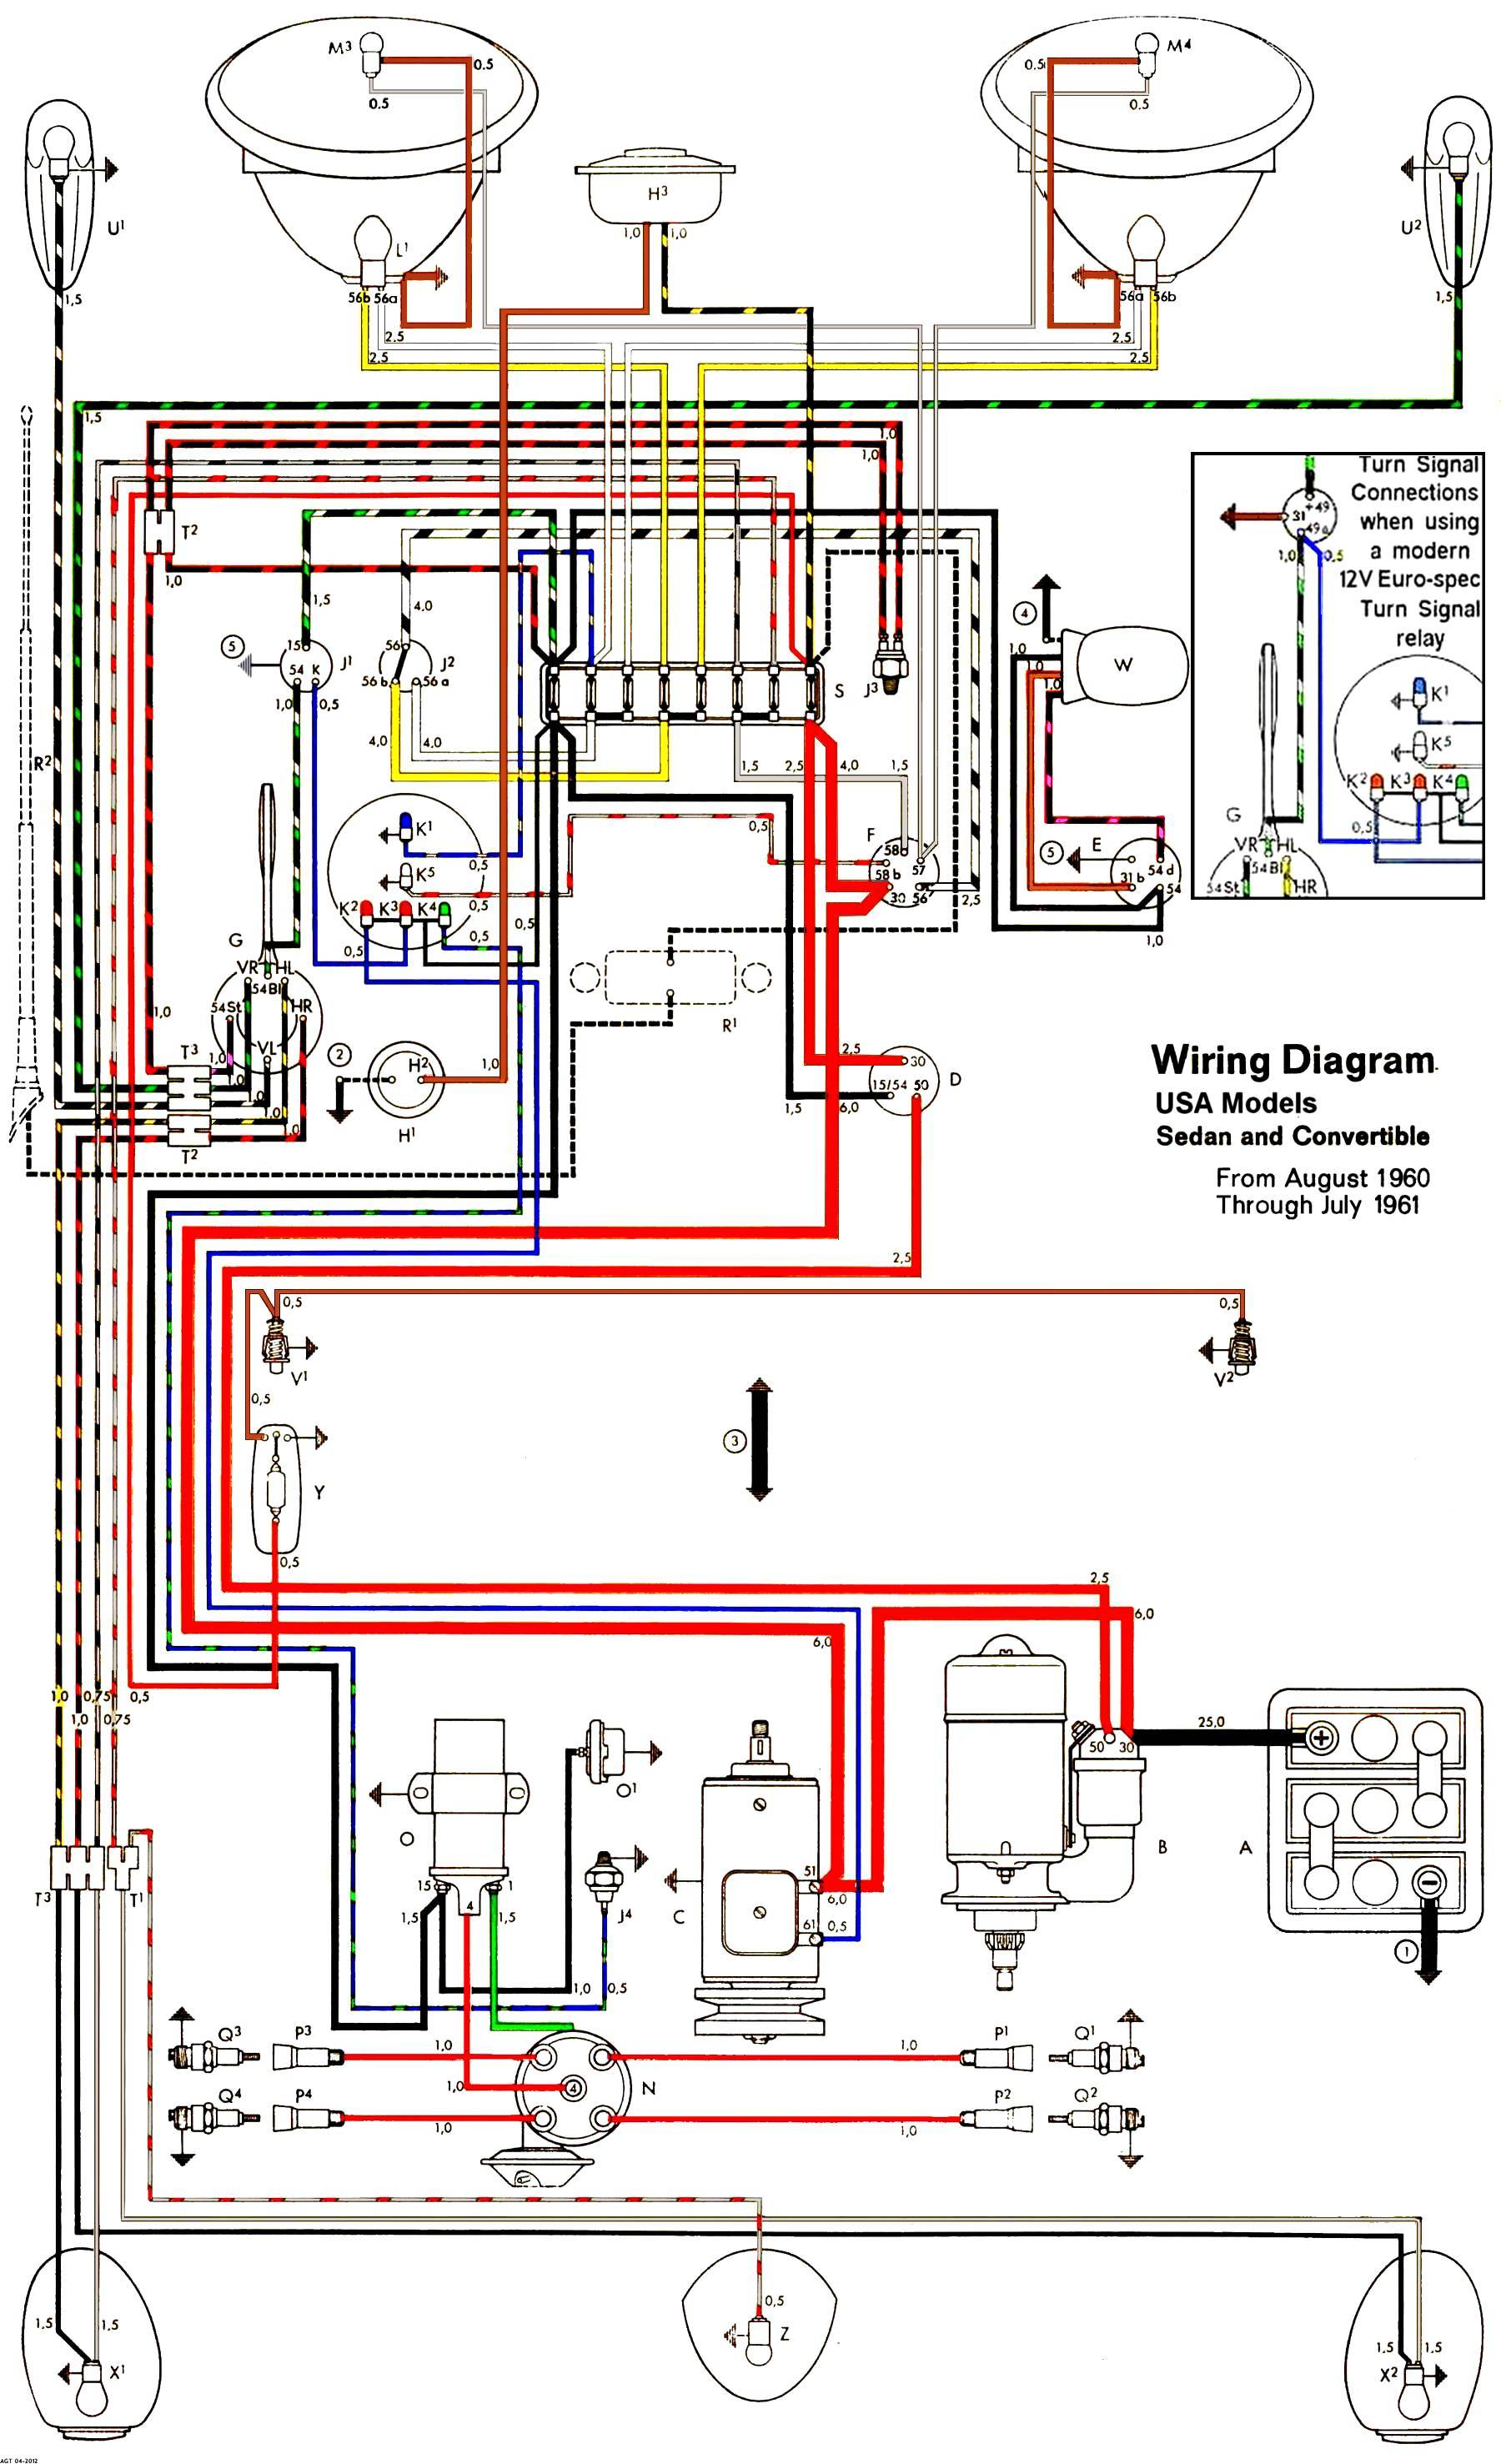 Type 1 Wiring Diagrams 2006 Chevy Malibu Tail Light Diagram